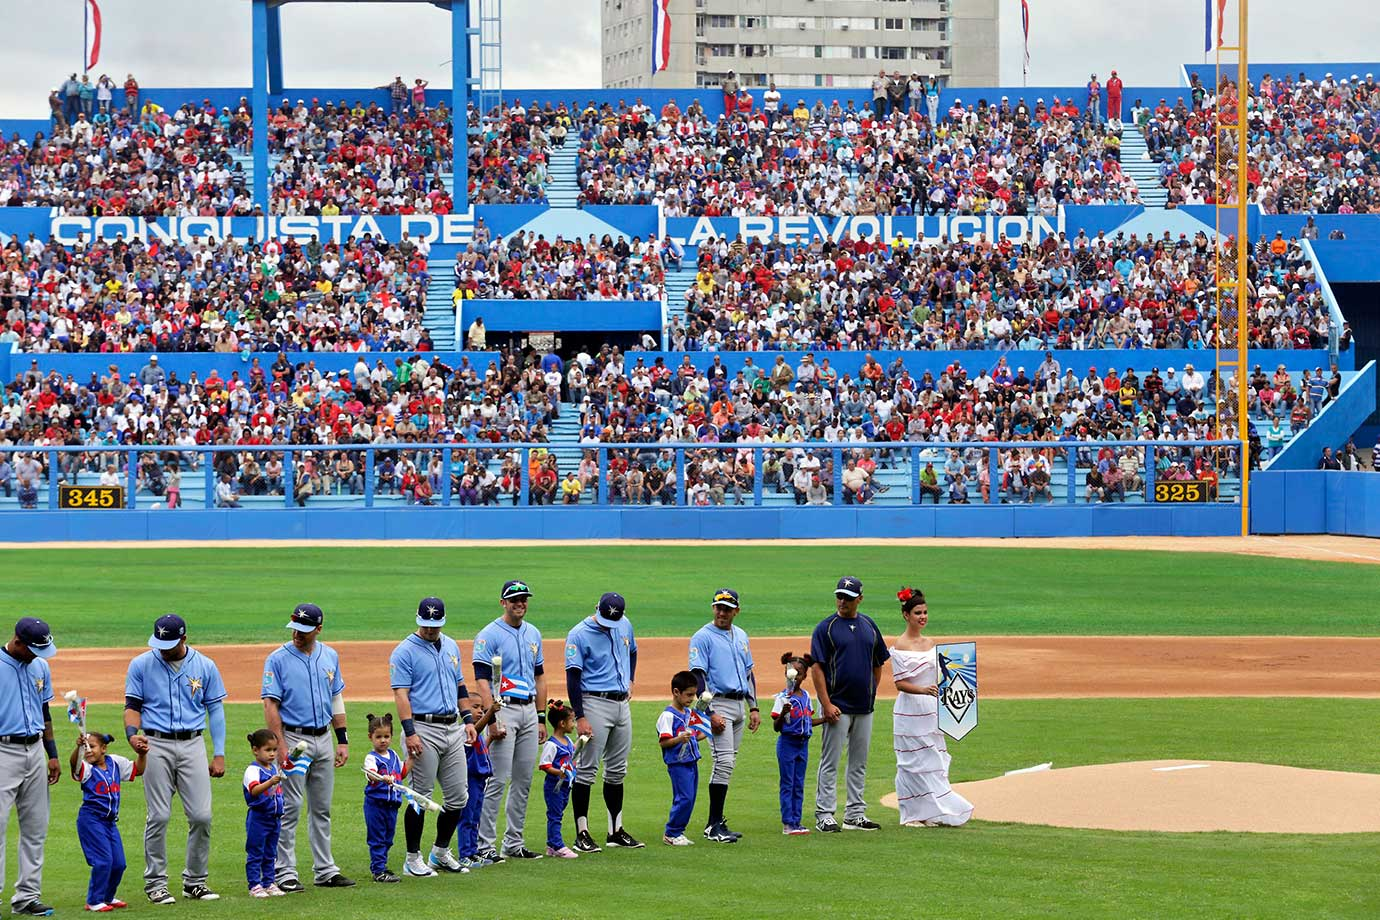 The stadium was packed for the exhibition game, which the Rays won 4-1.